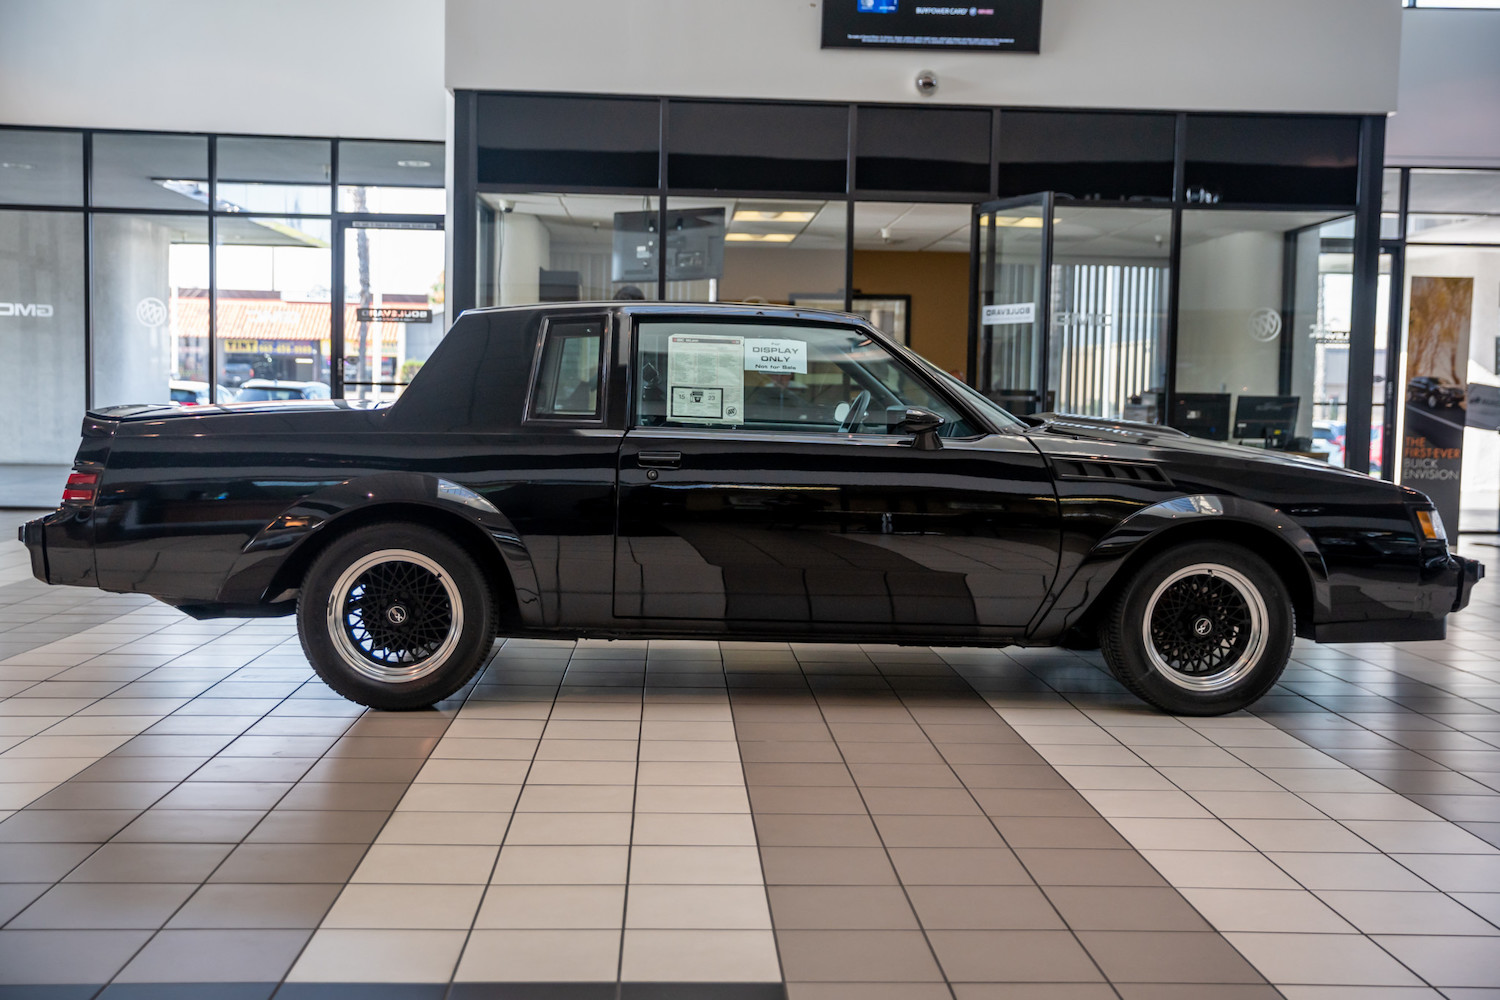 1987 Buick GNX side-view